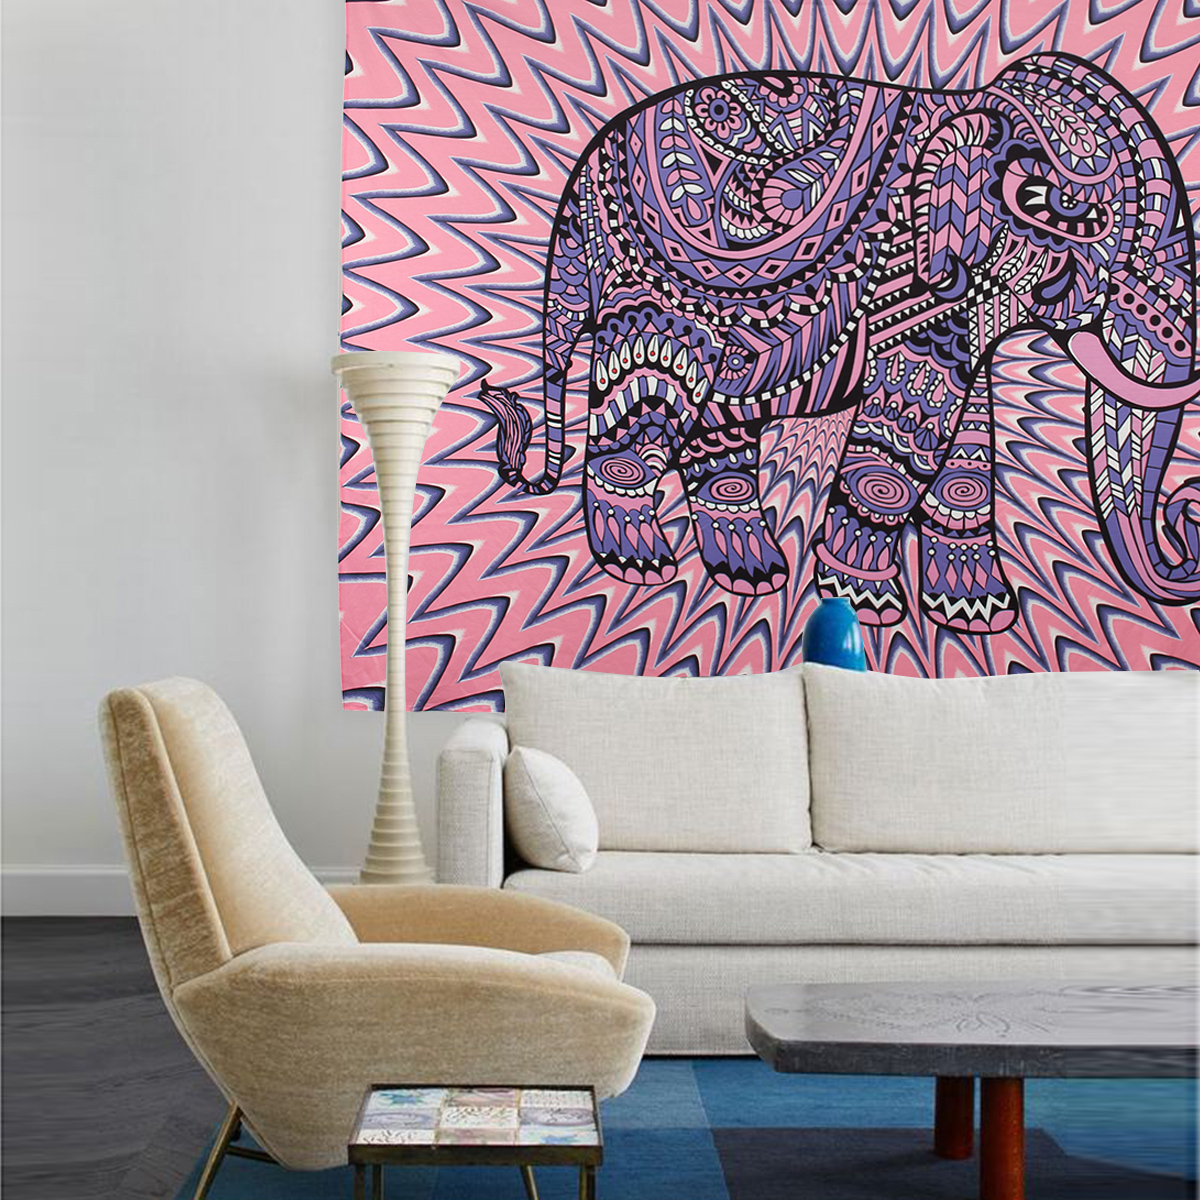 Elephant Mandala Tapestry Throw Towel Hippie Tapestry Floral Printed Home Decor Wall Tapestries Bedspread 210*150CM 17